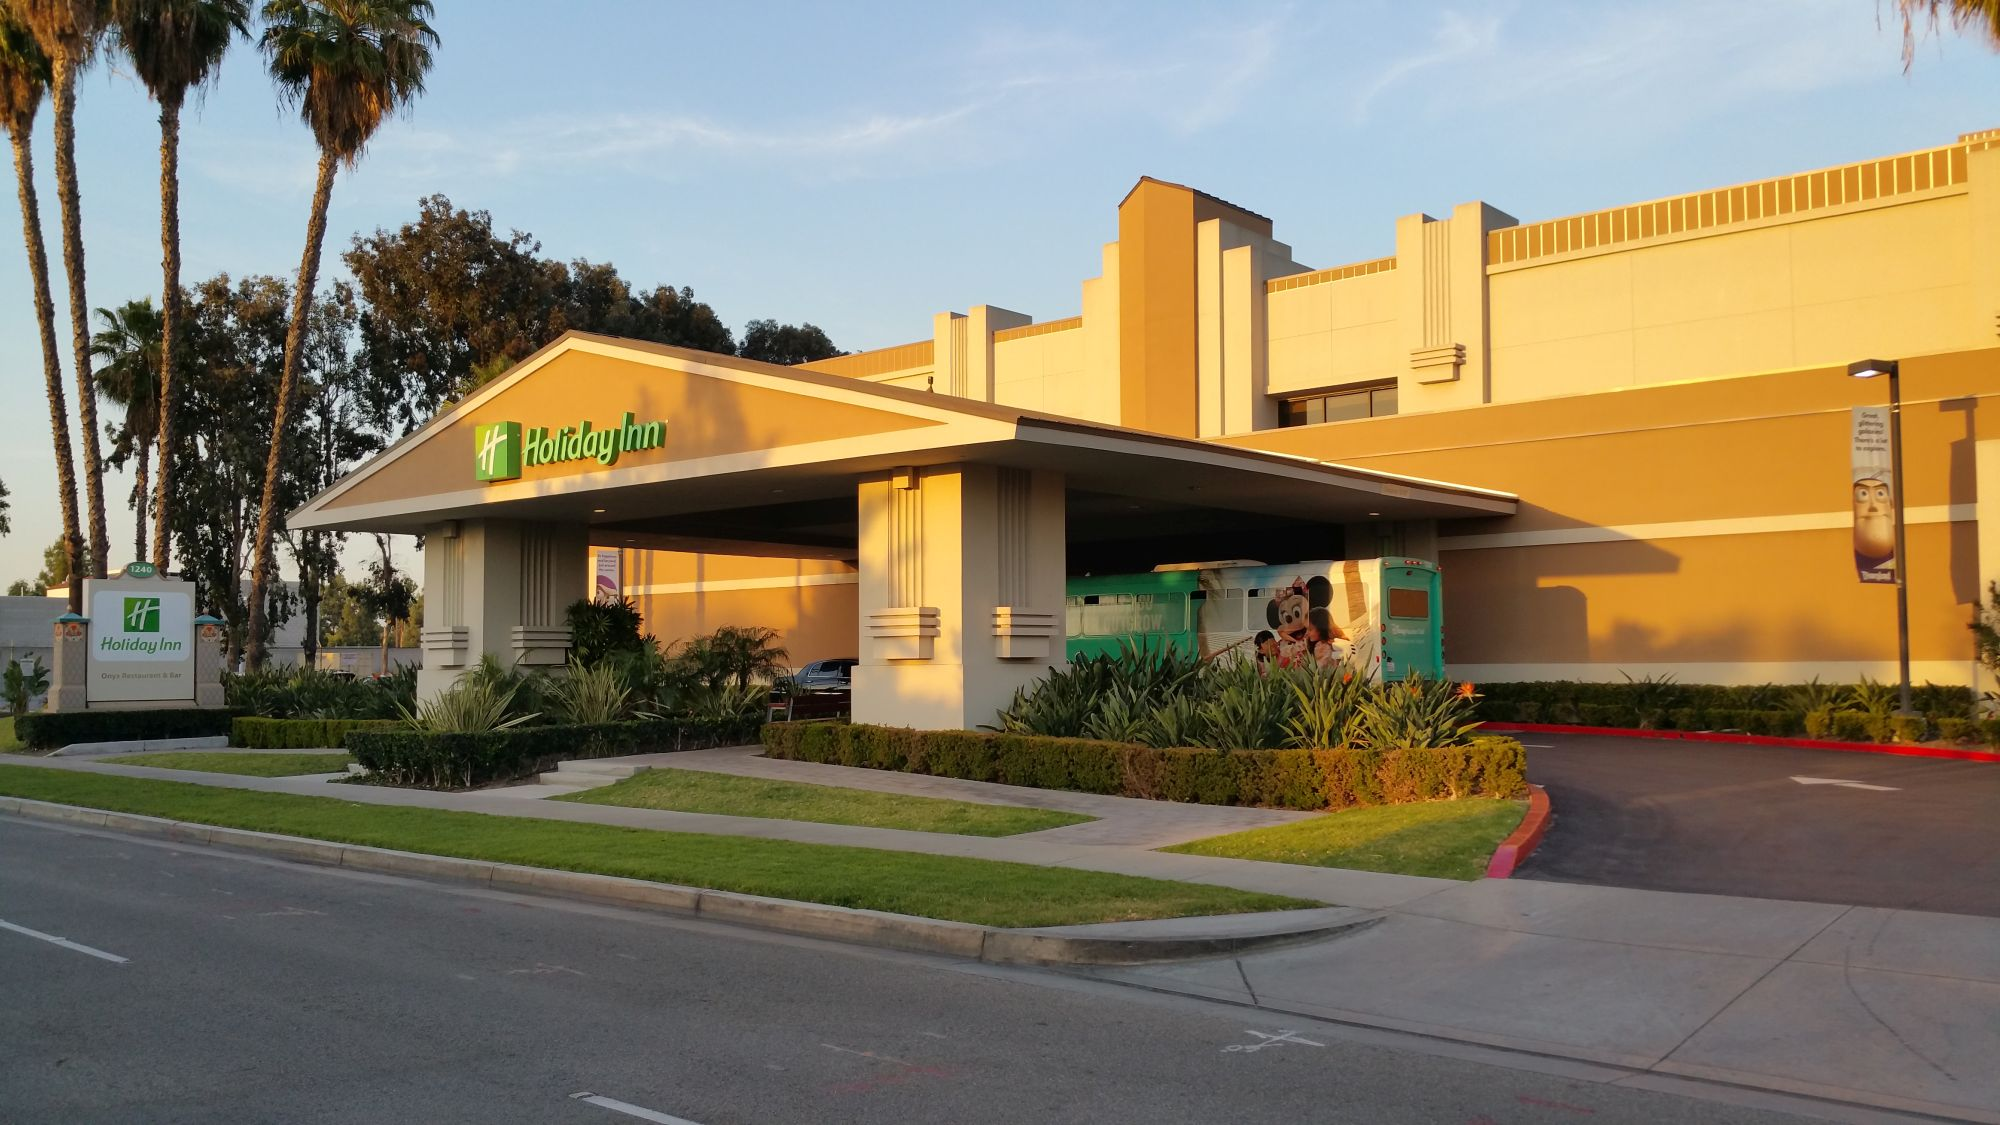 Hotel Review: Holiday Inn & Suites Anaheim (1 Blk/Disneyland®)